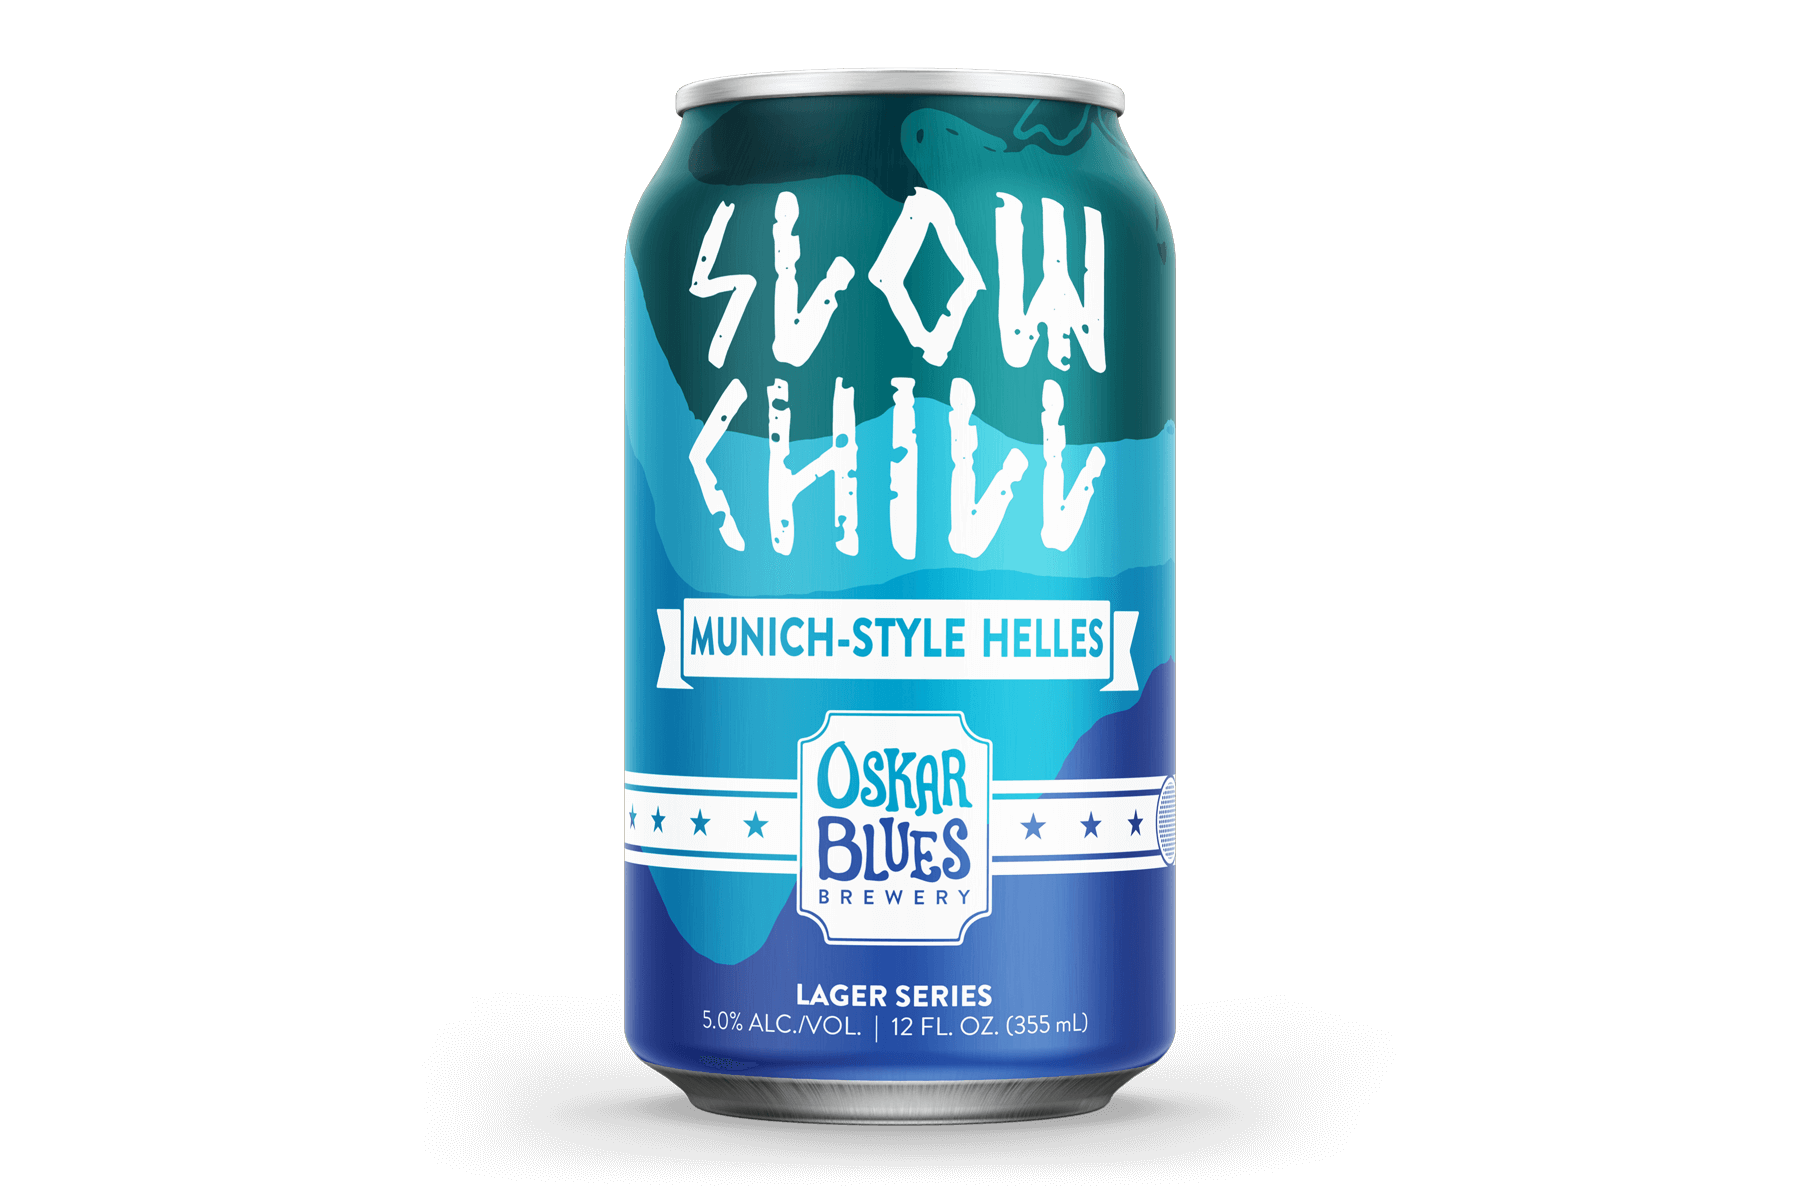 SlowChill-Helles-Can